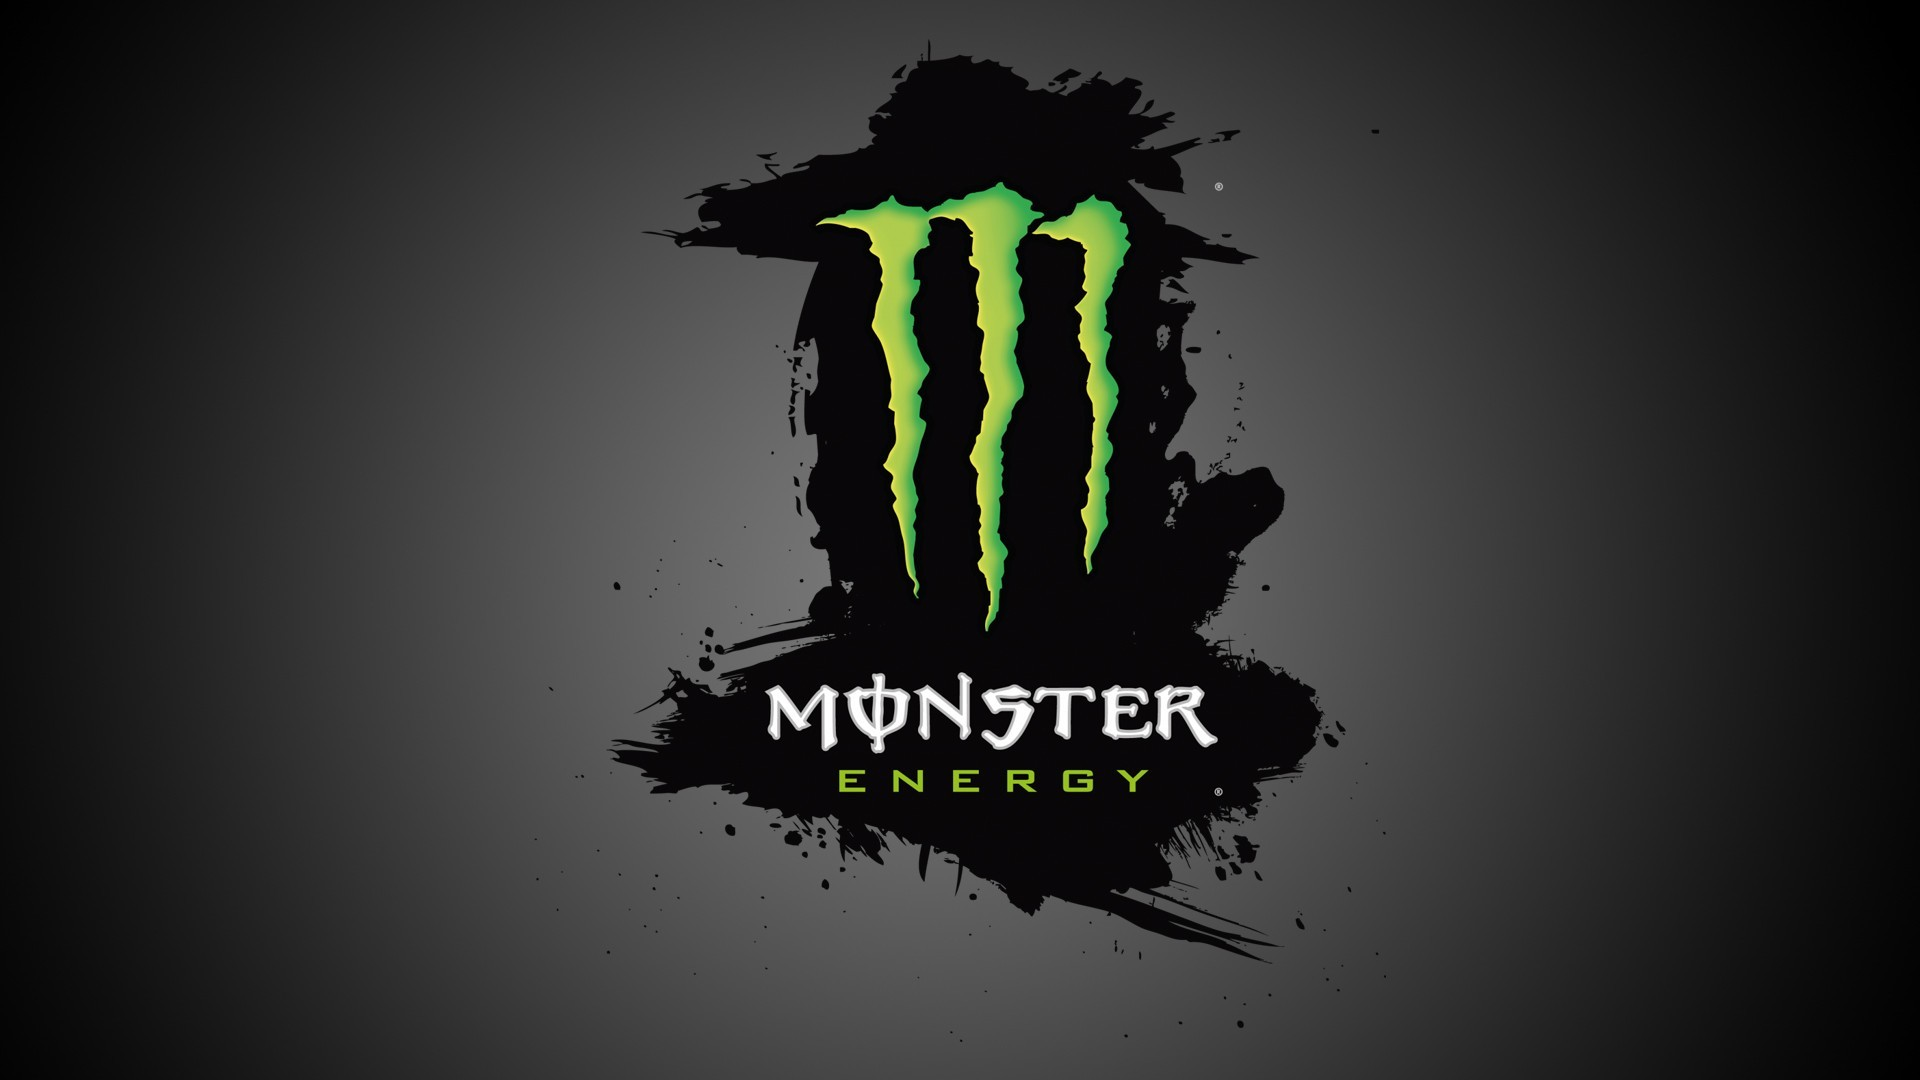 Monster Energy Wallpaper 72 Images